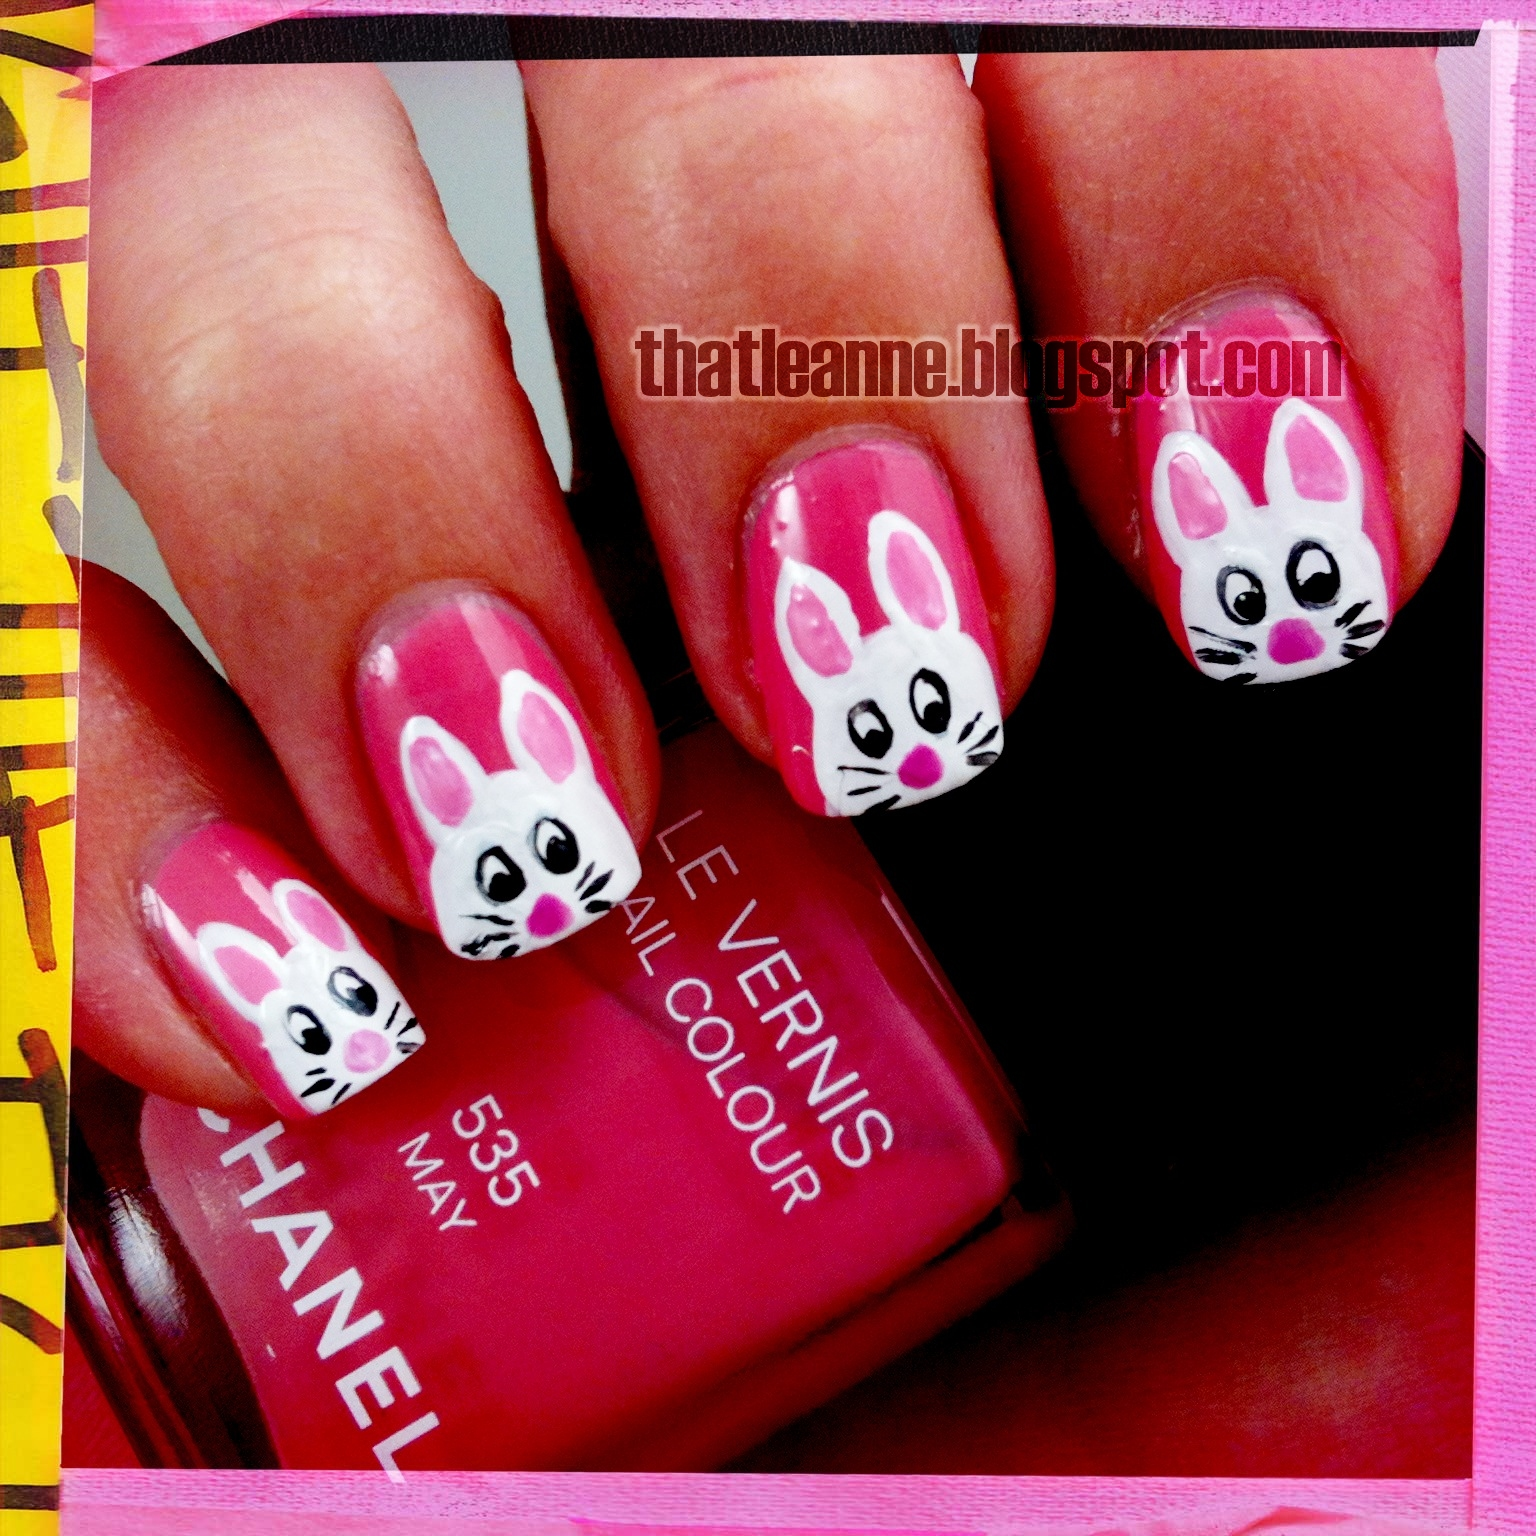 Easter Bunny Nails: Thatleanne: Easter Bunny Nail Art 2012